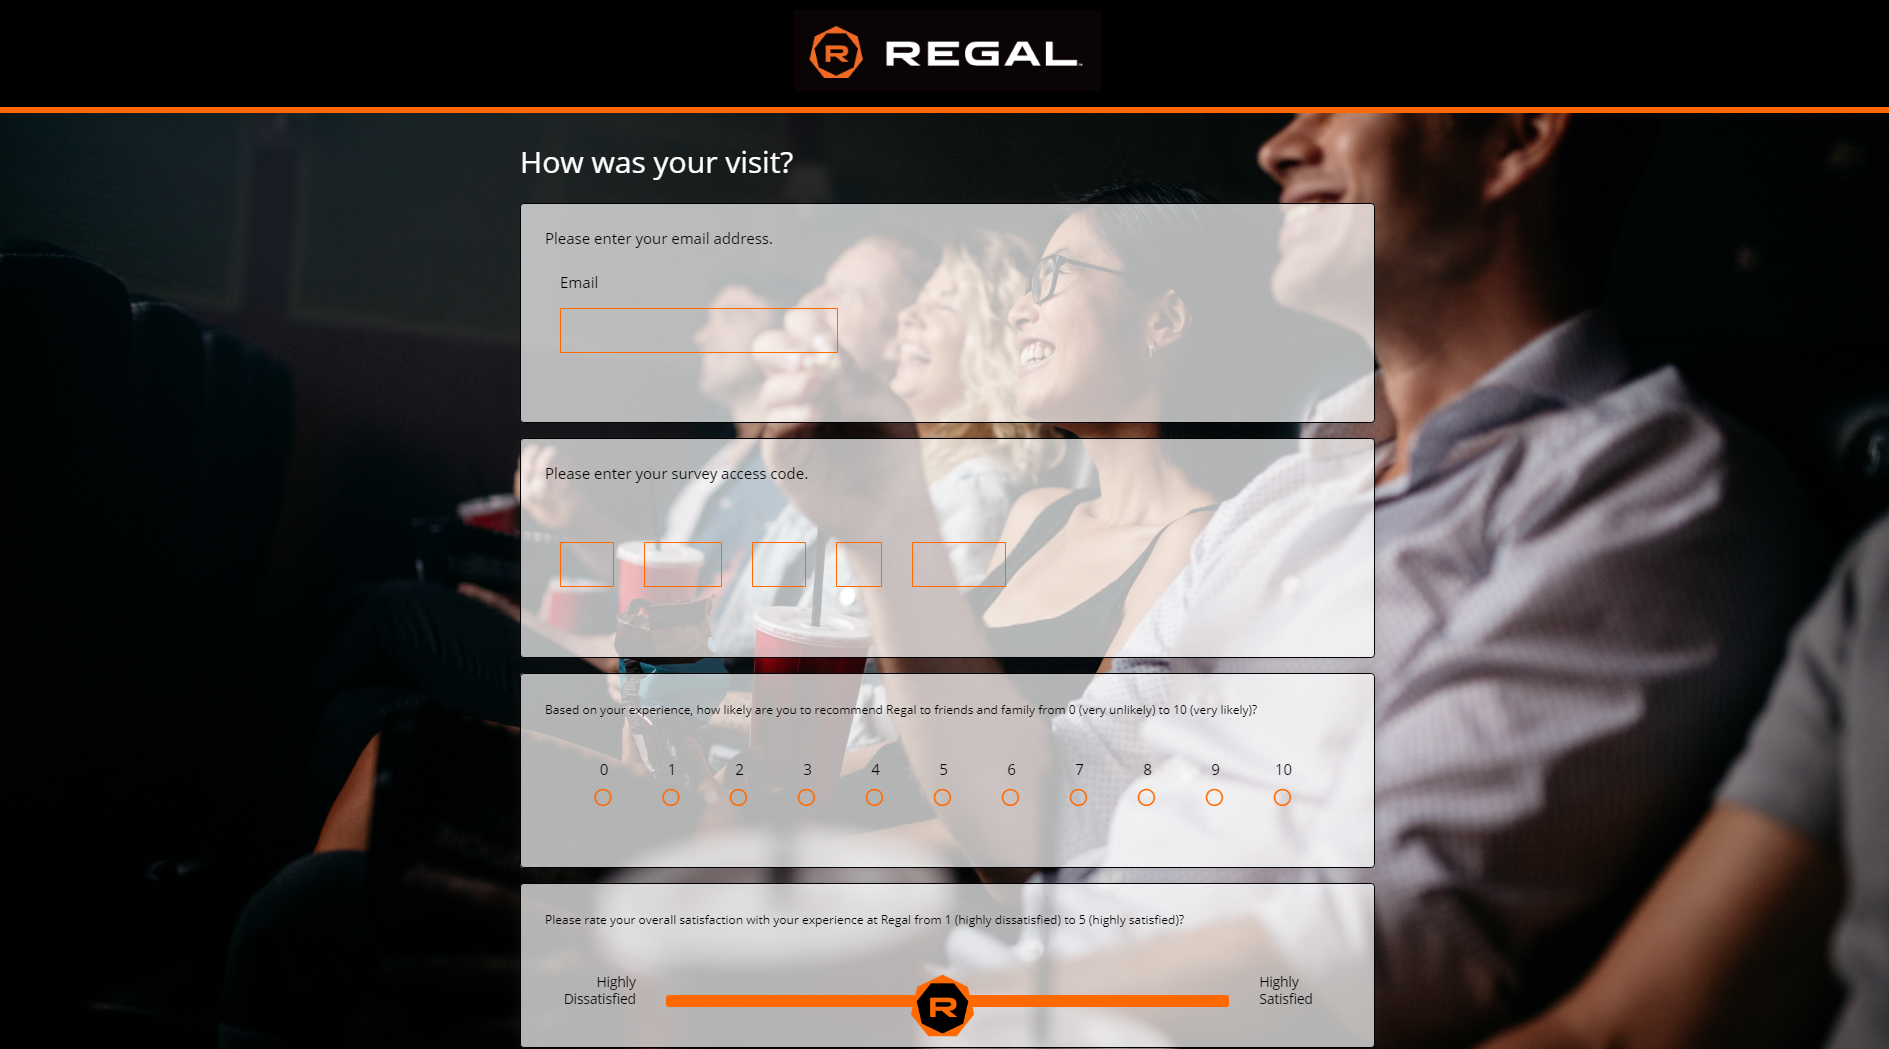 www.TalktoRegal.com - Take Regal Survey - Win $100 Gift Card